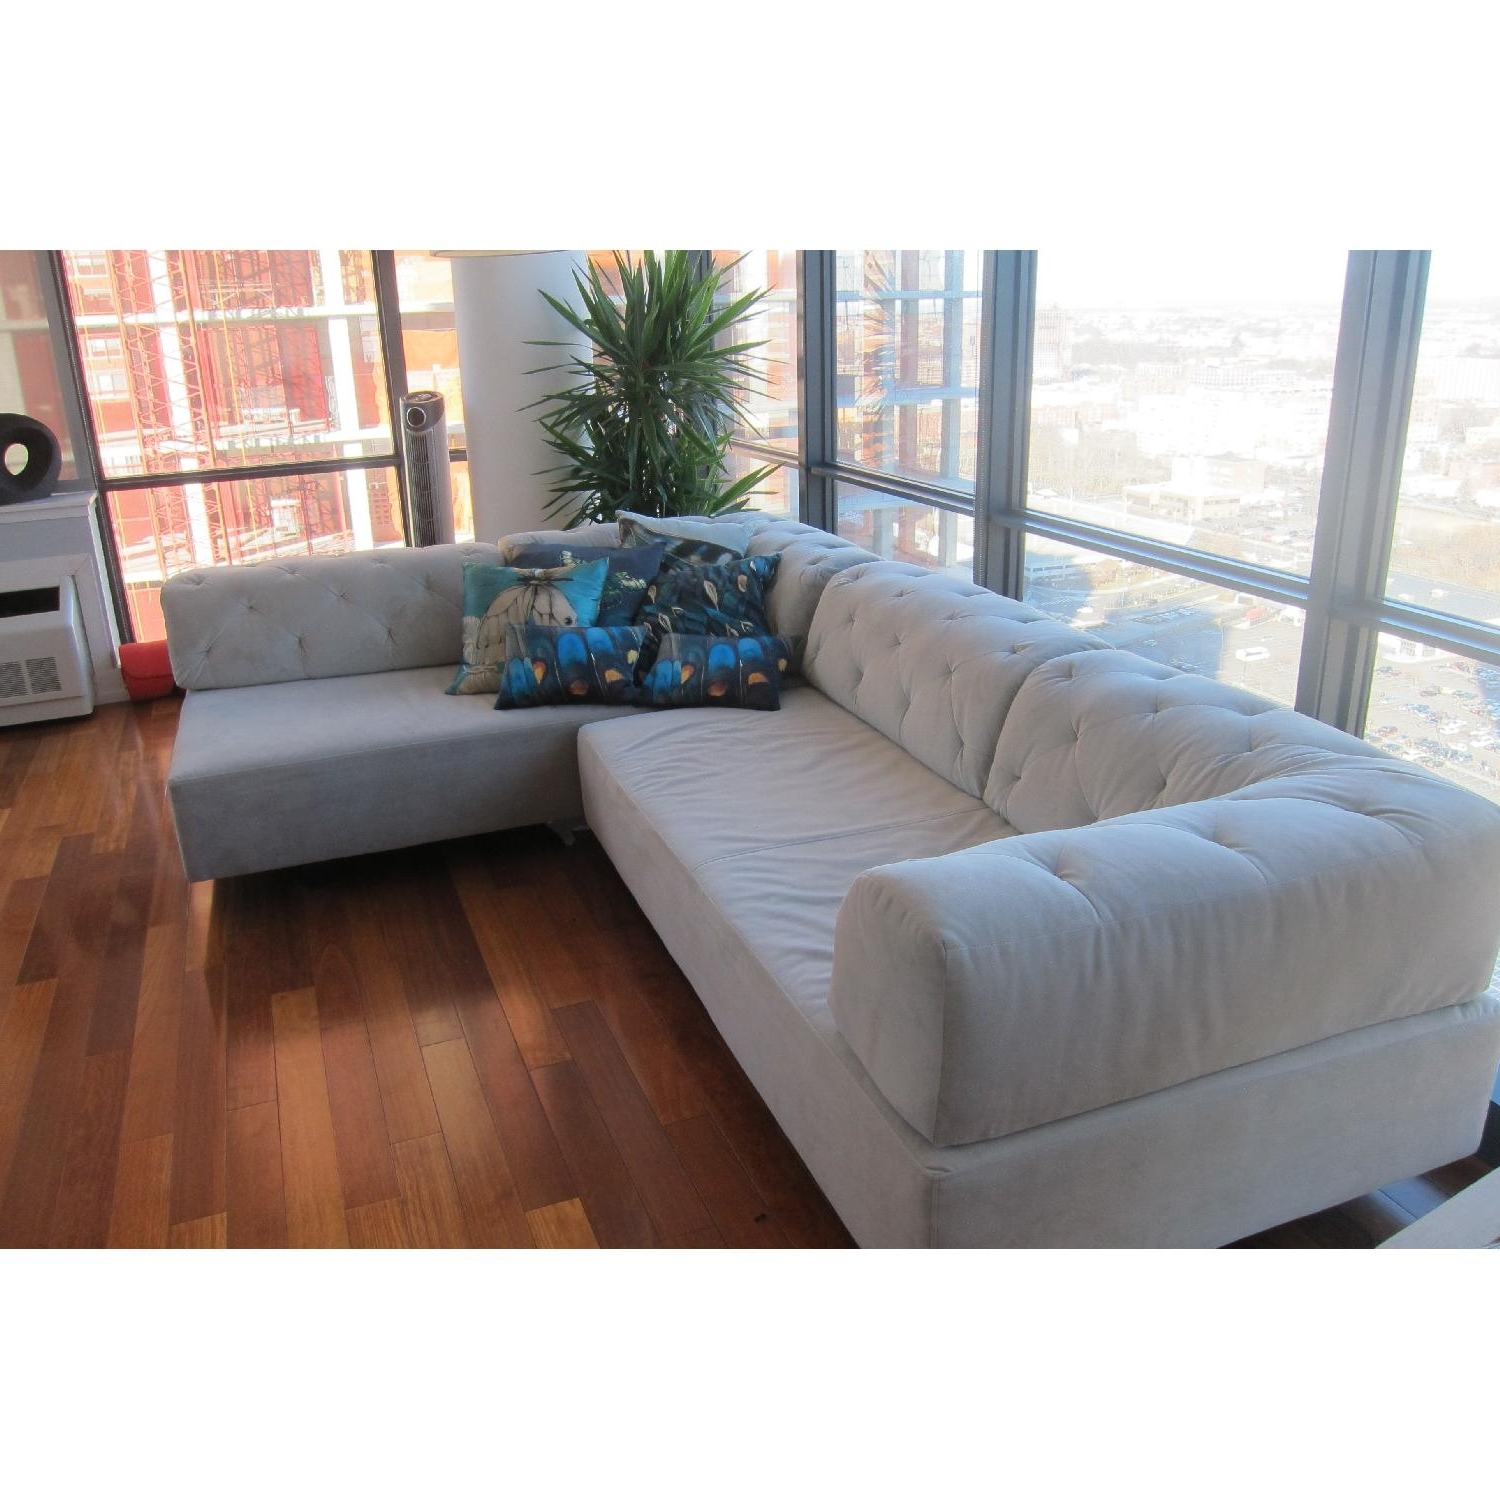 Pinterest Pertaining To Well Liked Sectional Sofas At Chicago (View 10 of 15)